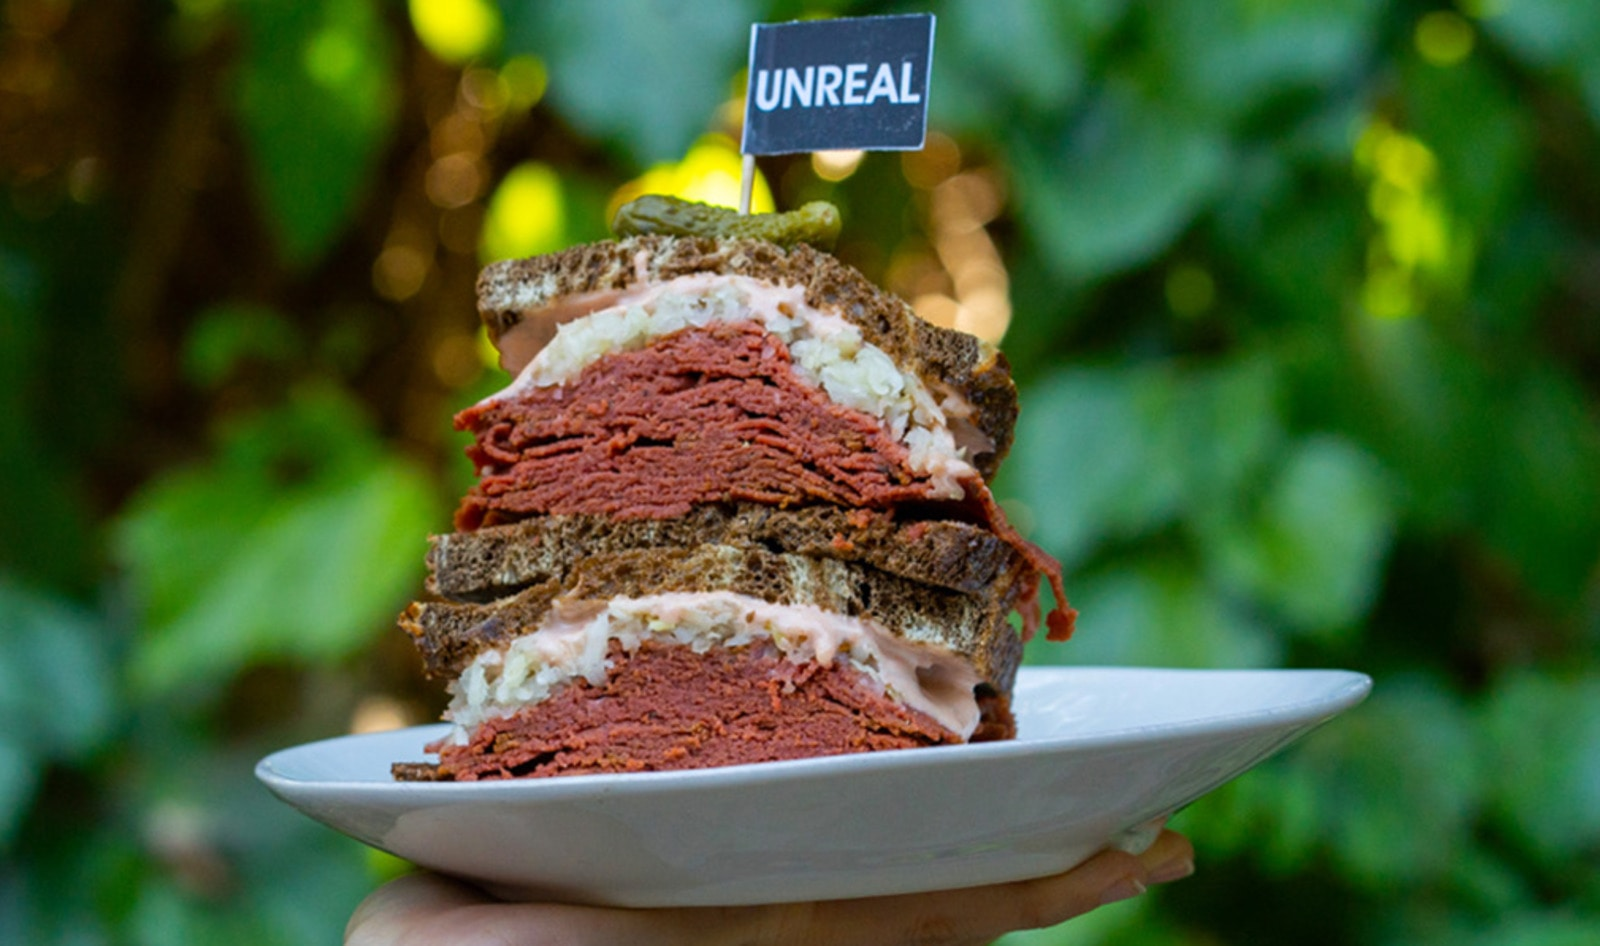 Vegan Corned Beef Sandwich Debuts at 58 Whole Foods Markets